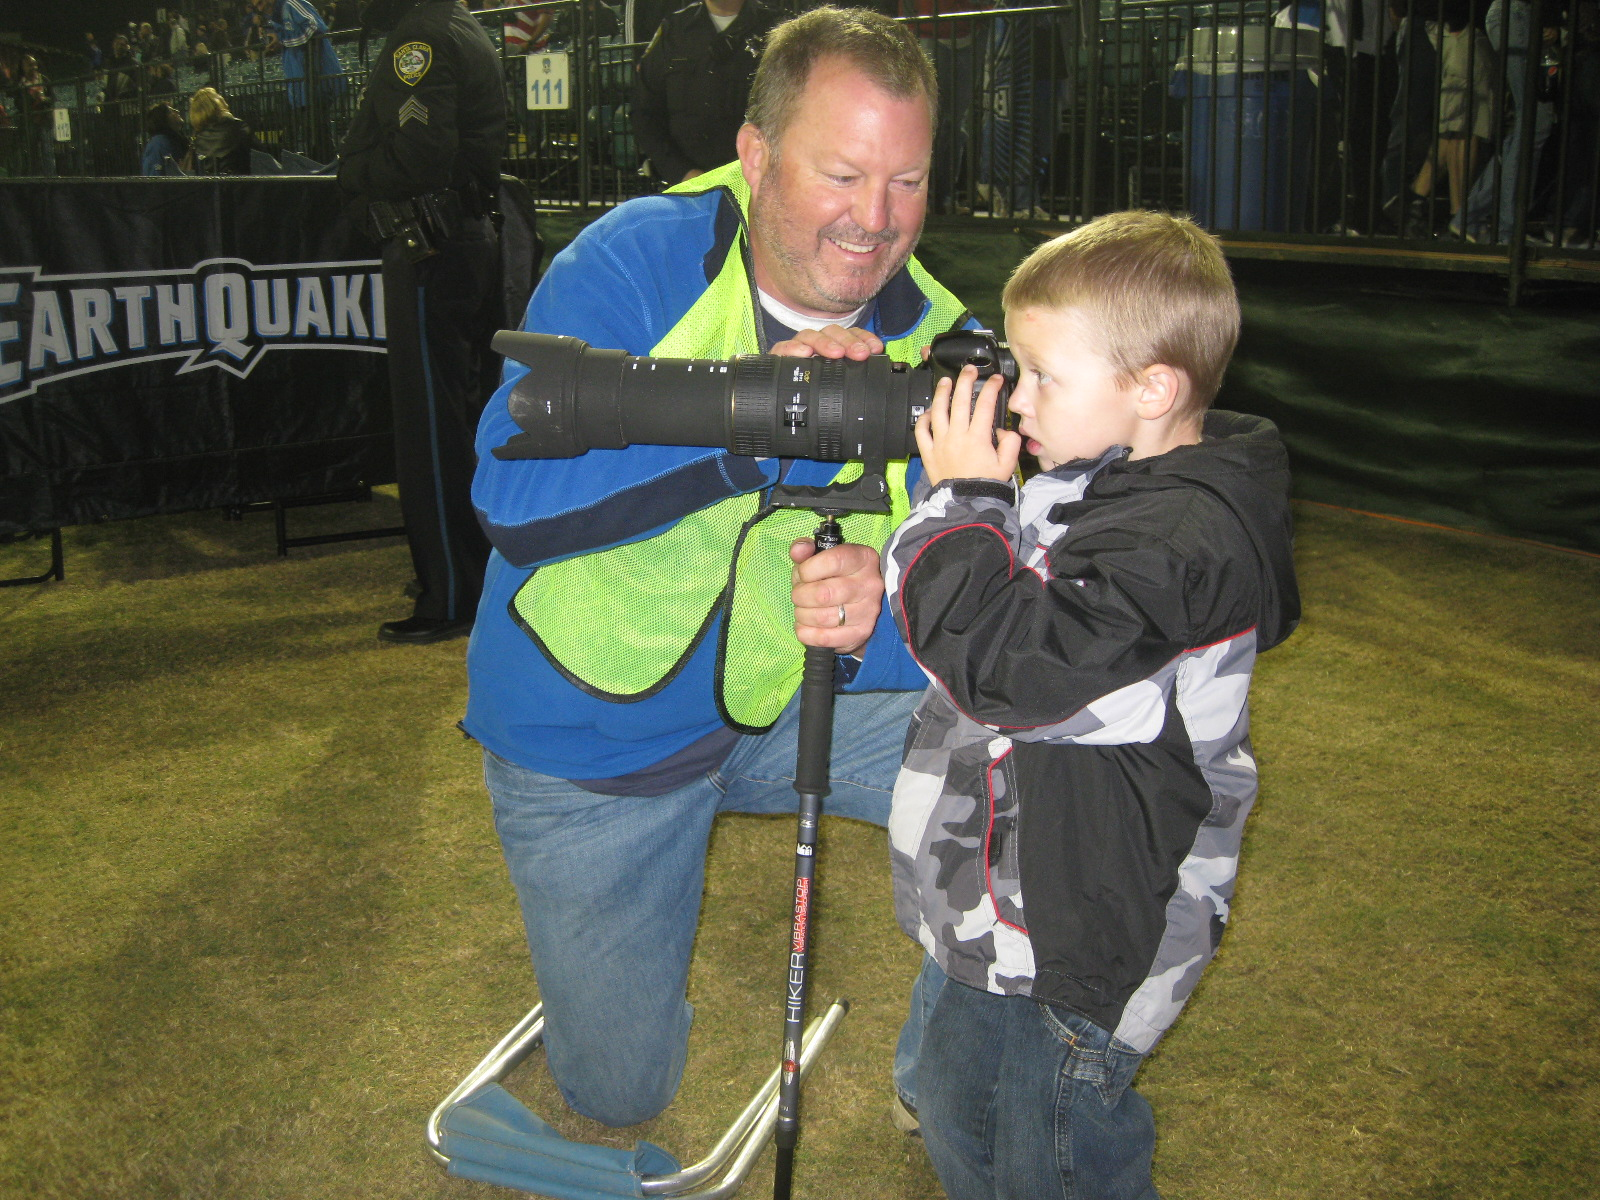 Boy looking through lenses of large camera on stick as man kneeling nearby supports it